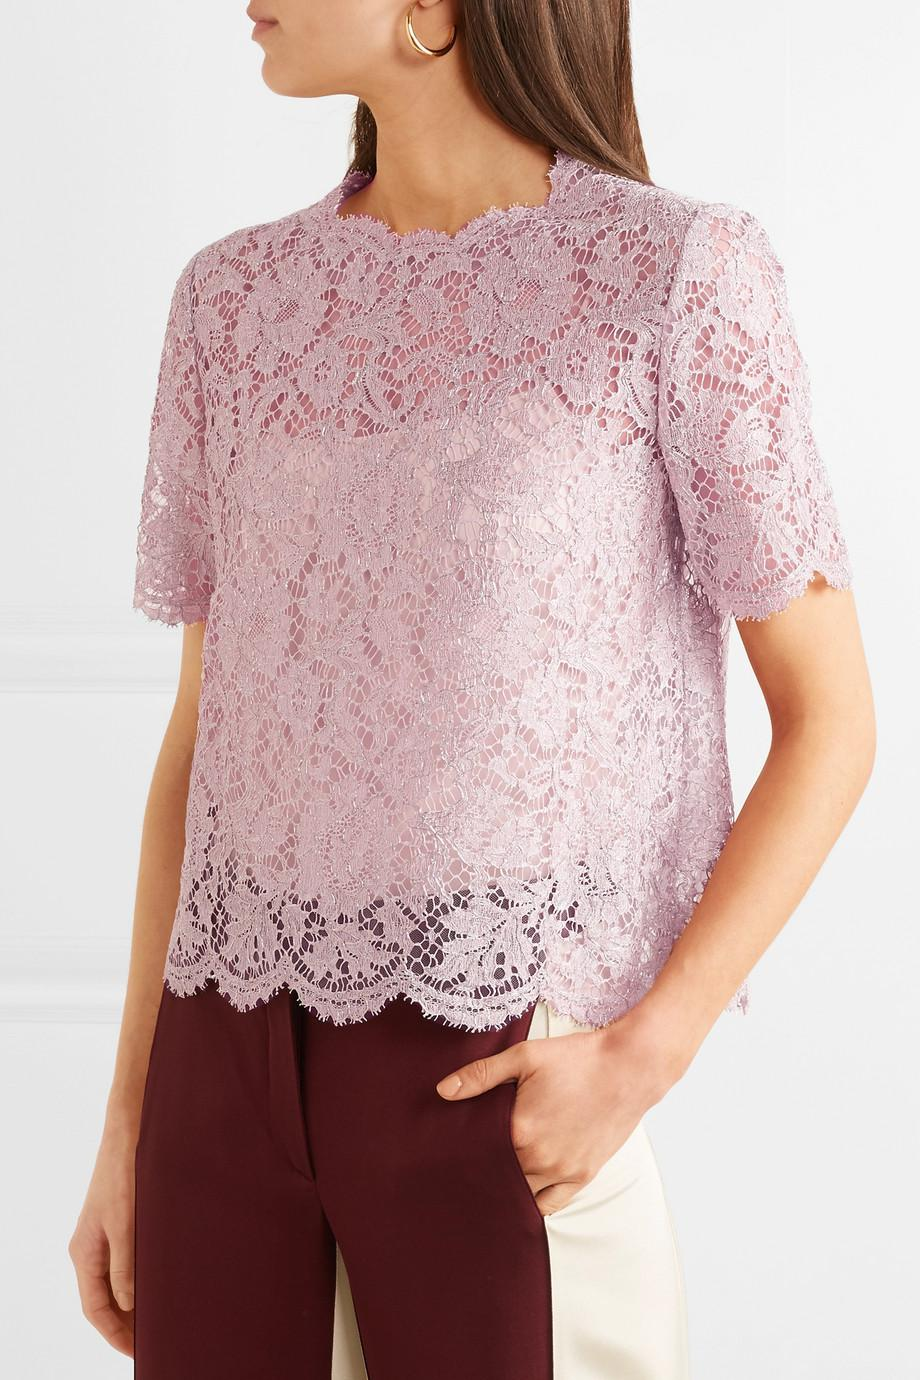 Scalloped Metallic Corded Lace Top - Lilac Valentino Fake s8TSjg